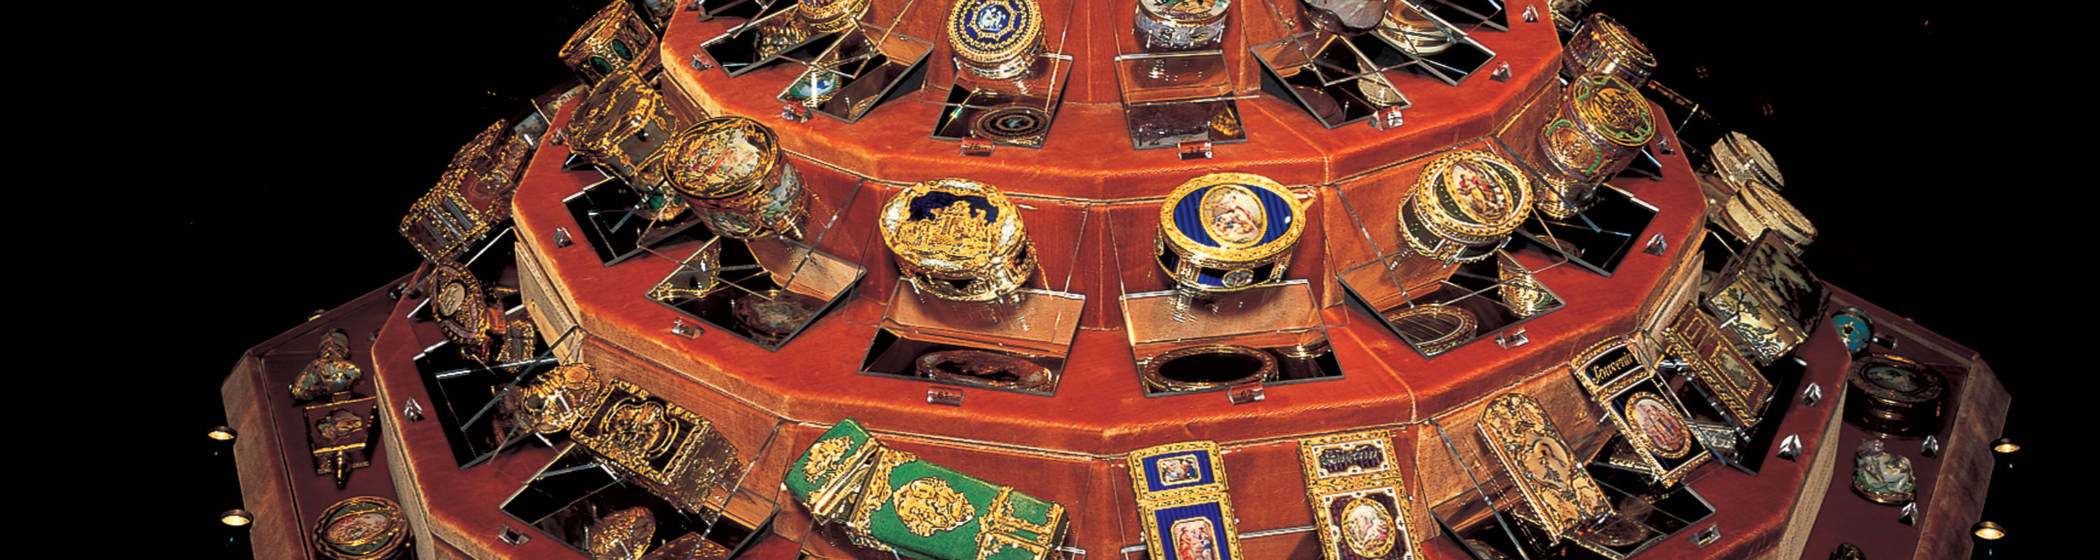 gold-boxes-3000-800